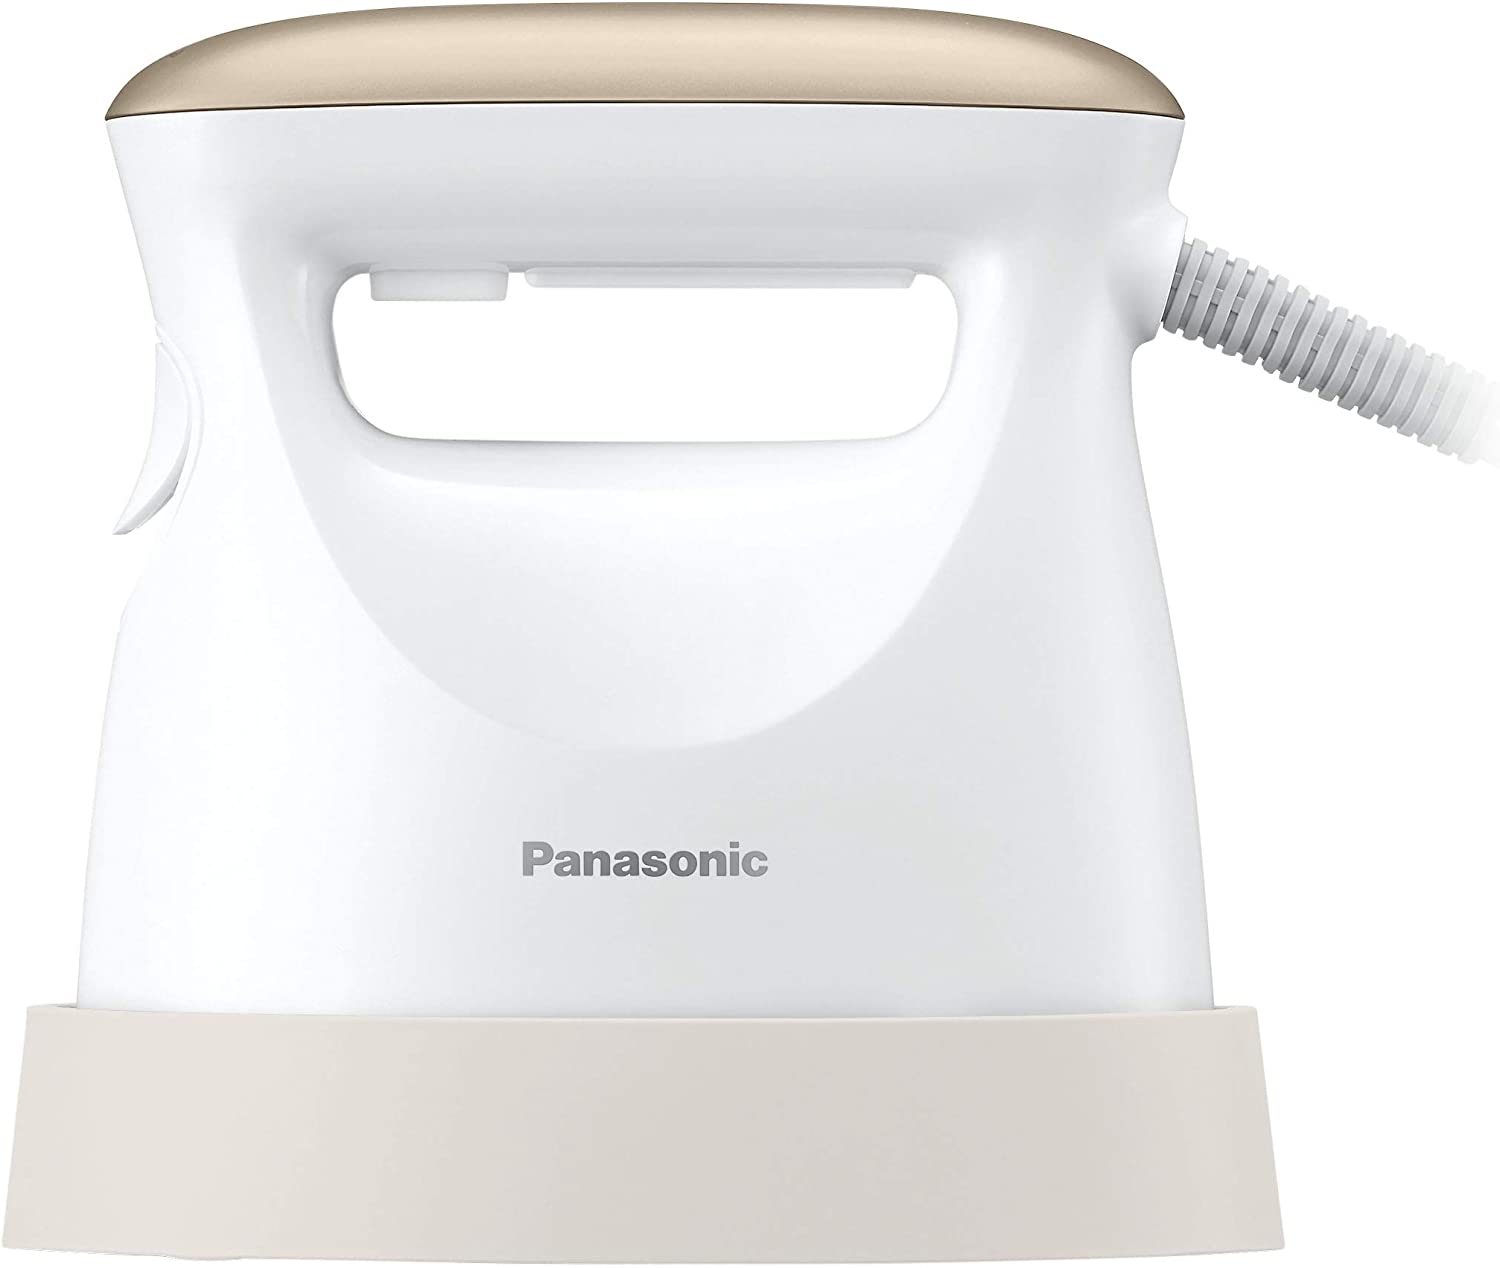 Free Shipping New Panasonic NI-FS570-PN Clothes steamer 360 gol ° model pink steam Max 69% OFF